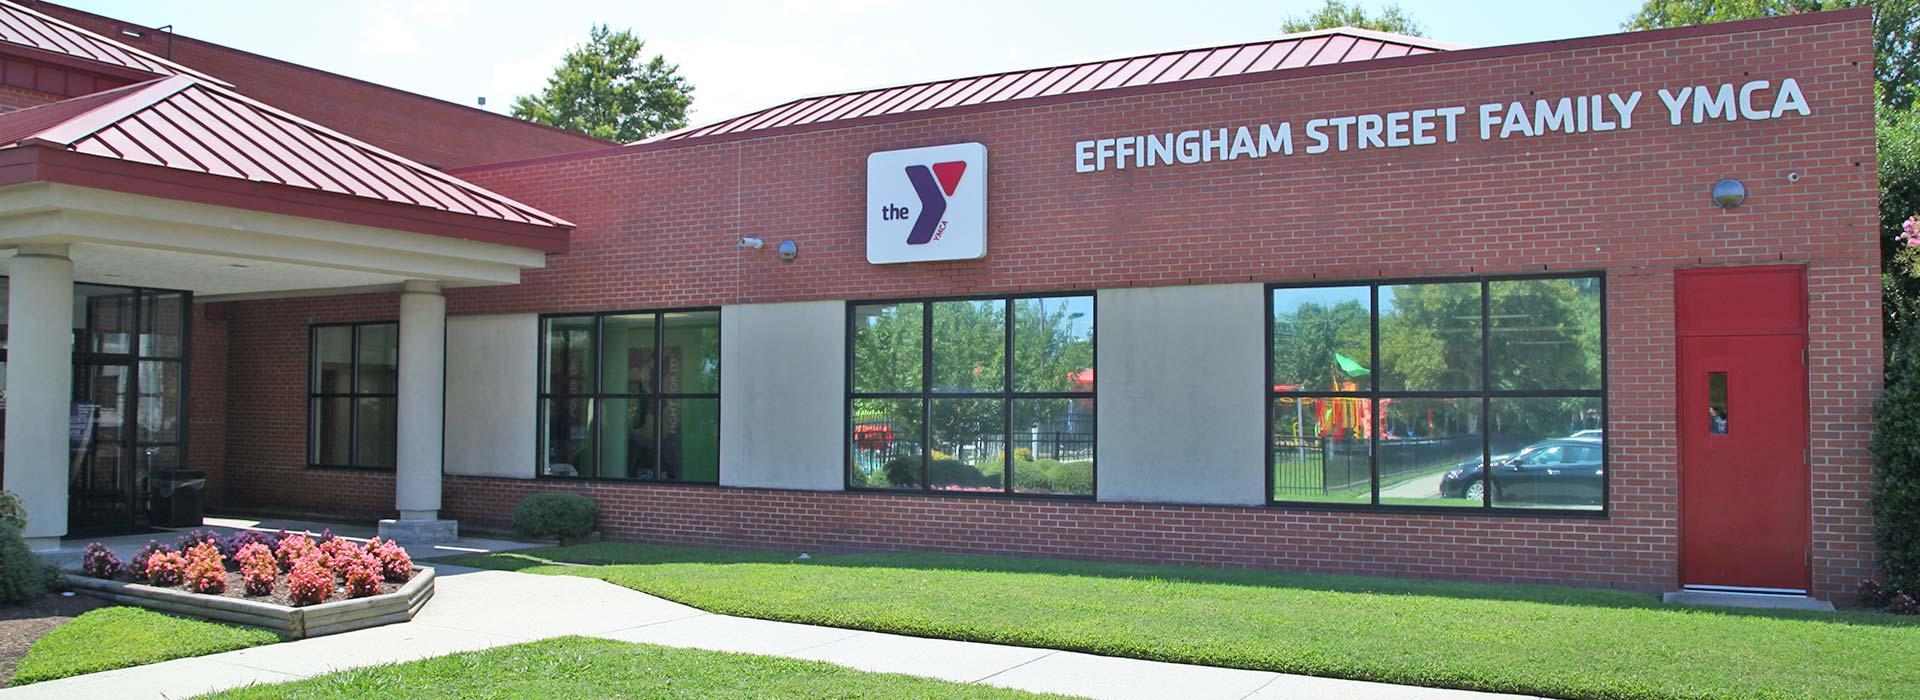 Exterior view of the Effingham Street Family YMCA